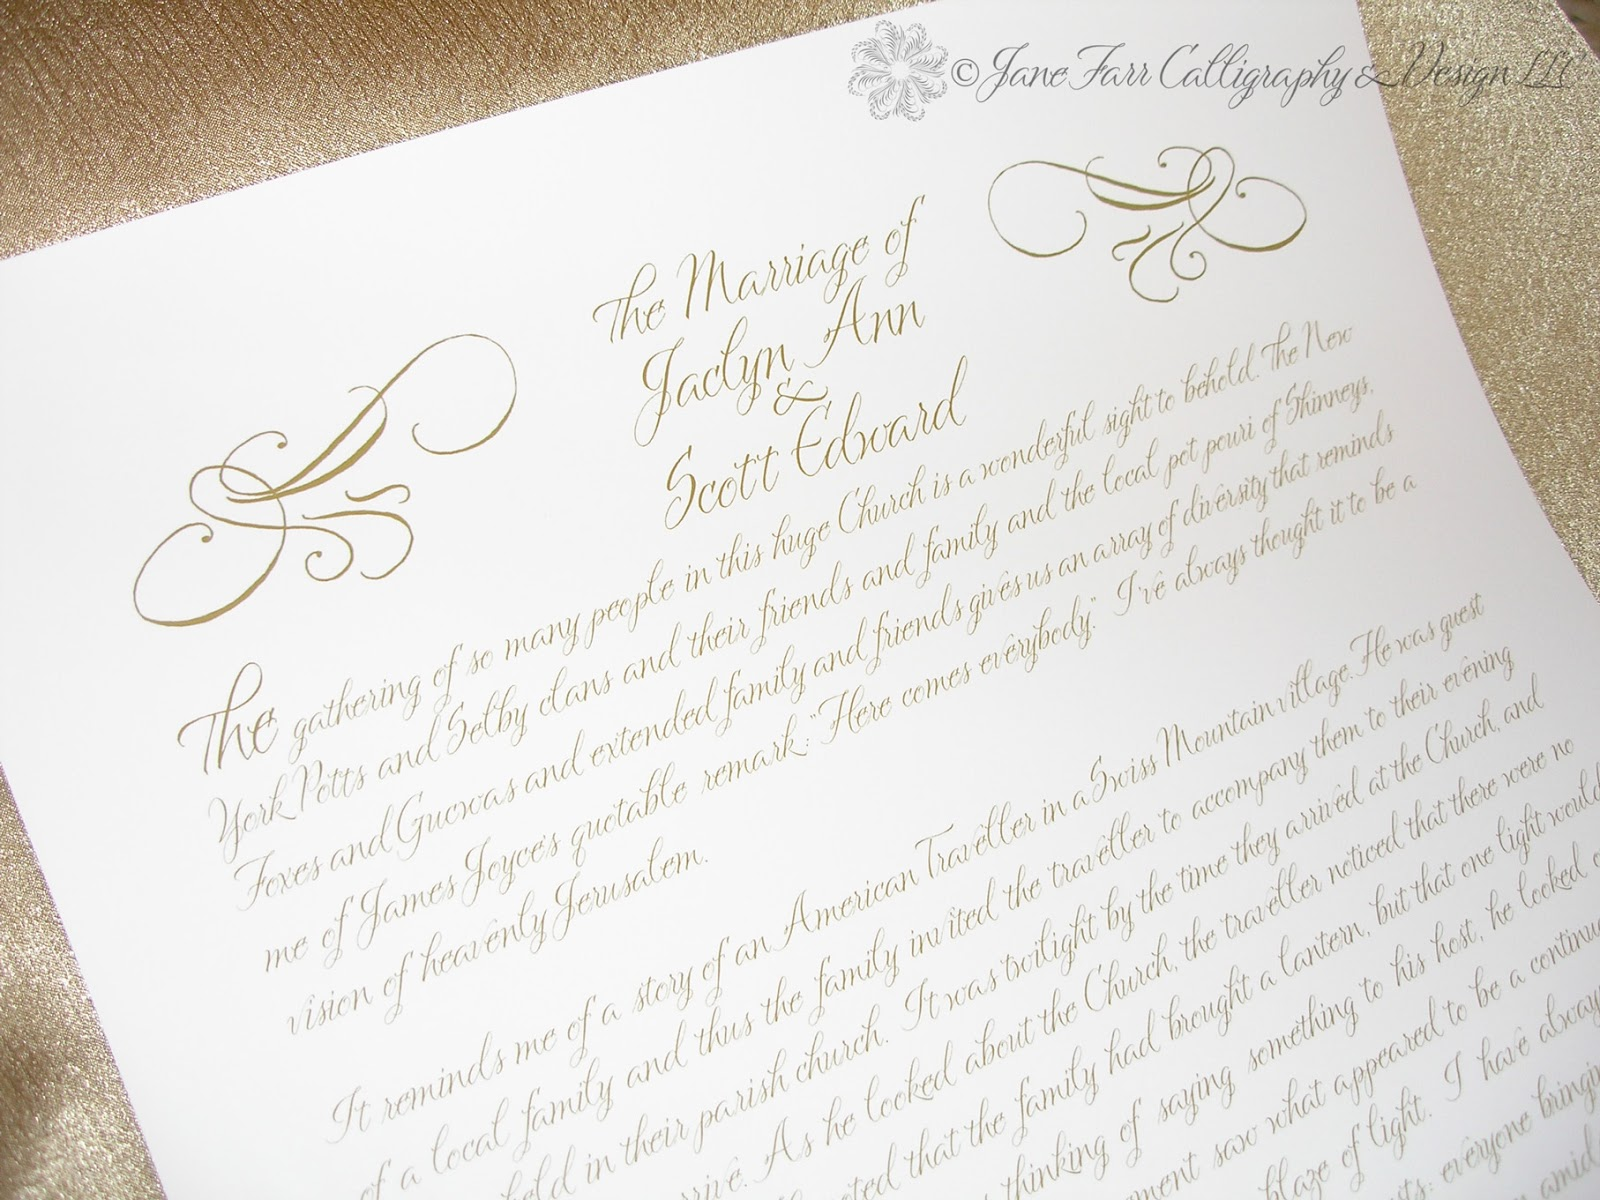 Wedding calligraphy by jane farr: first wedding anniversary gift